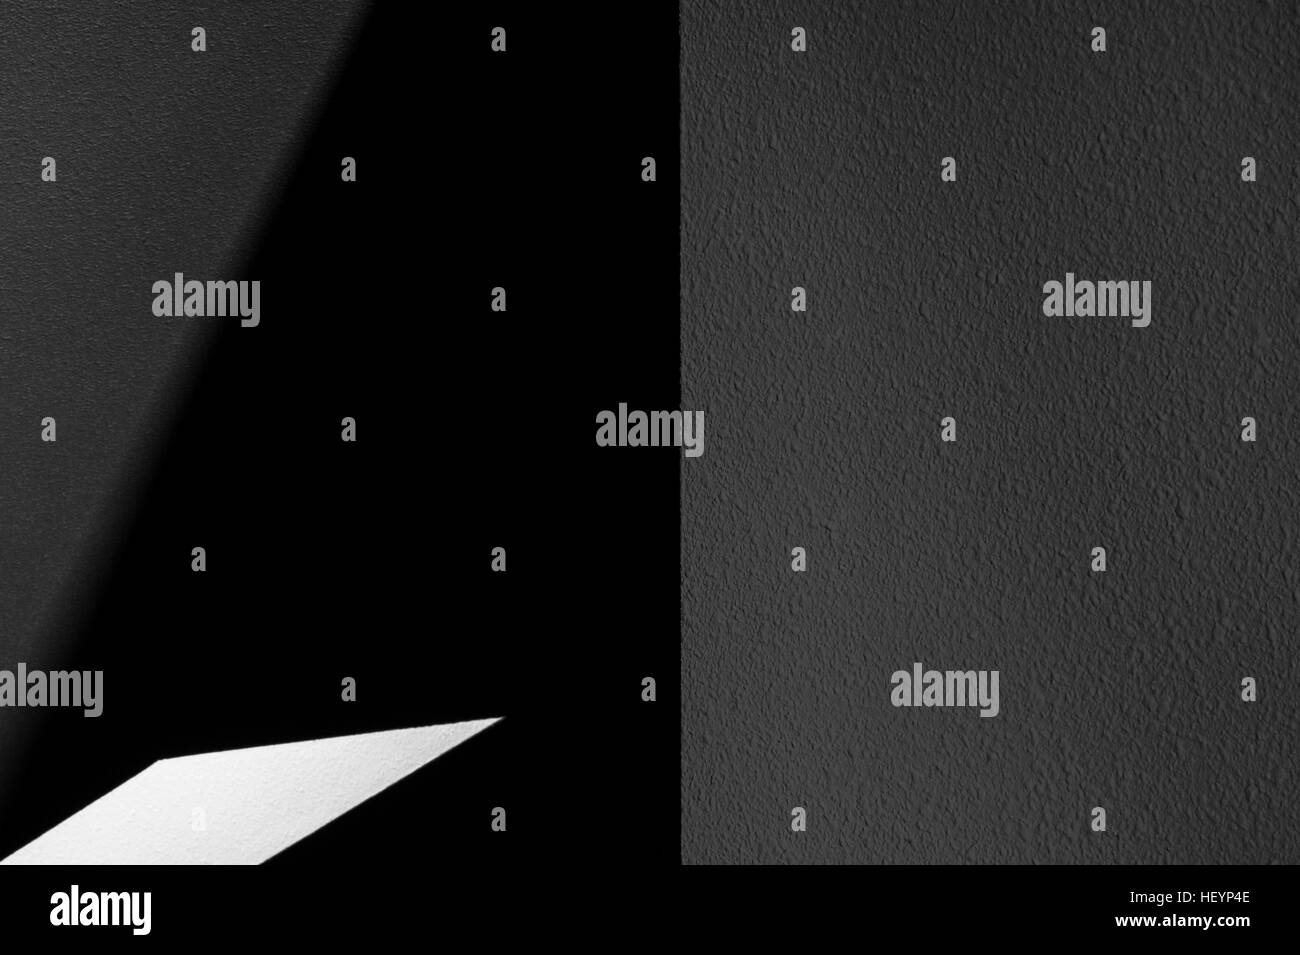 Abstract shapes interior home with light and dark angles wall and empty space - Stock Image